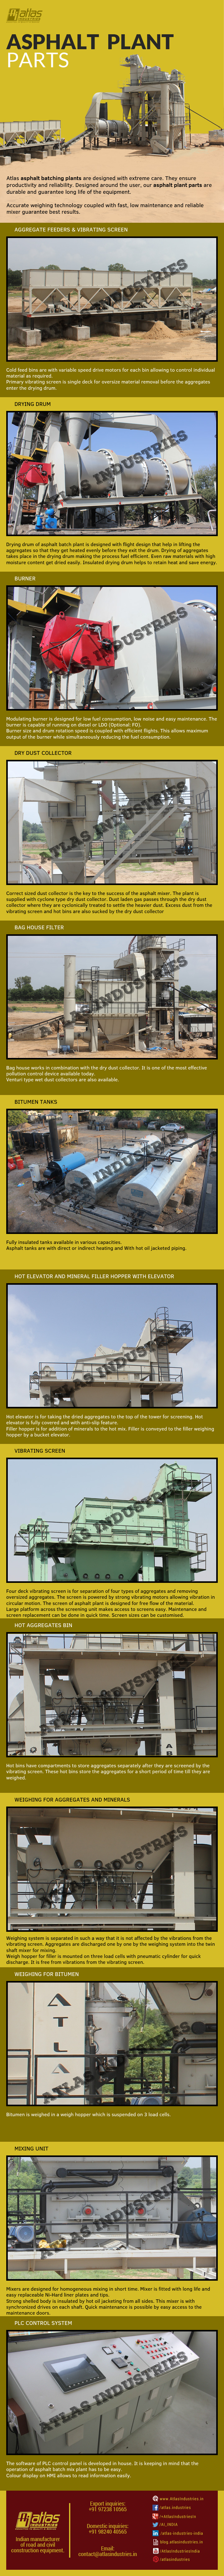 Asphalt plant parts - batch mix plant